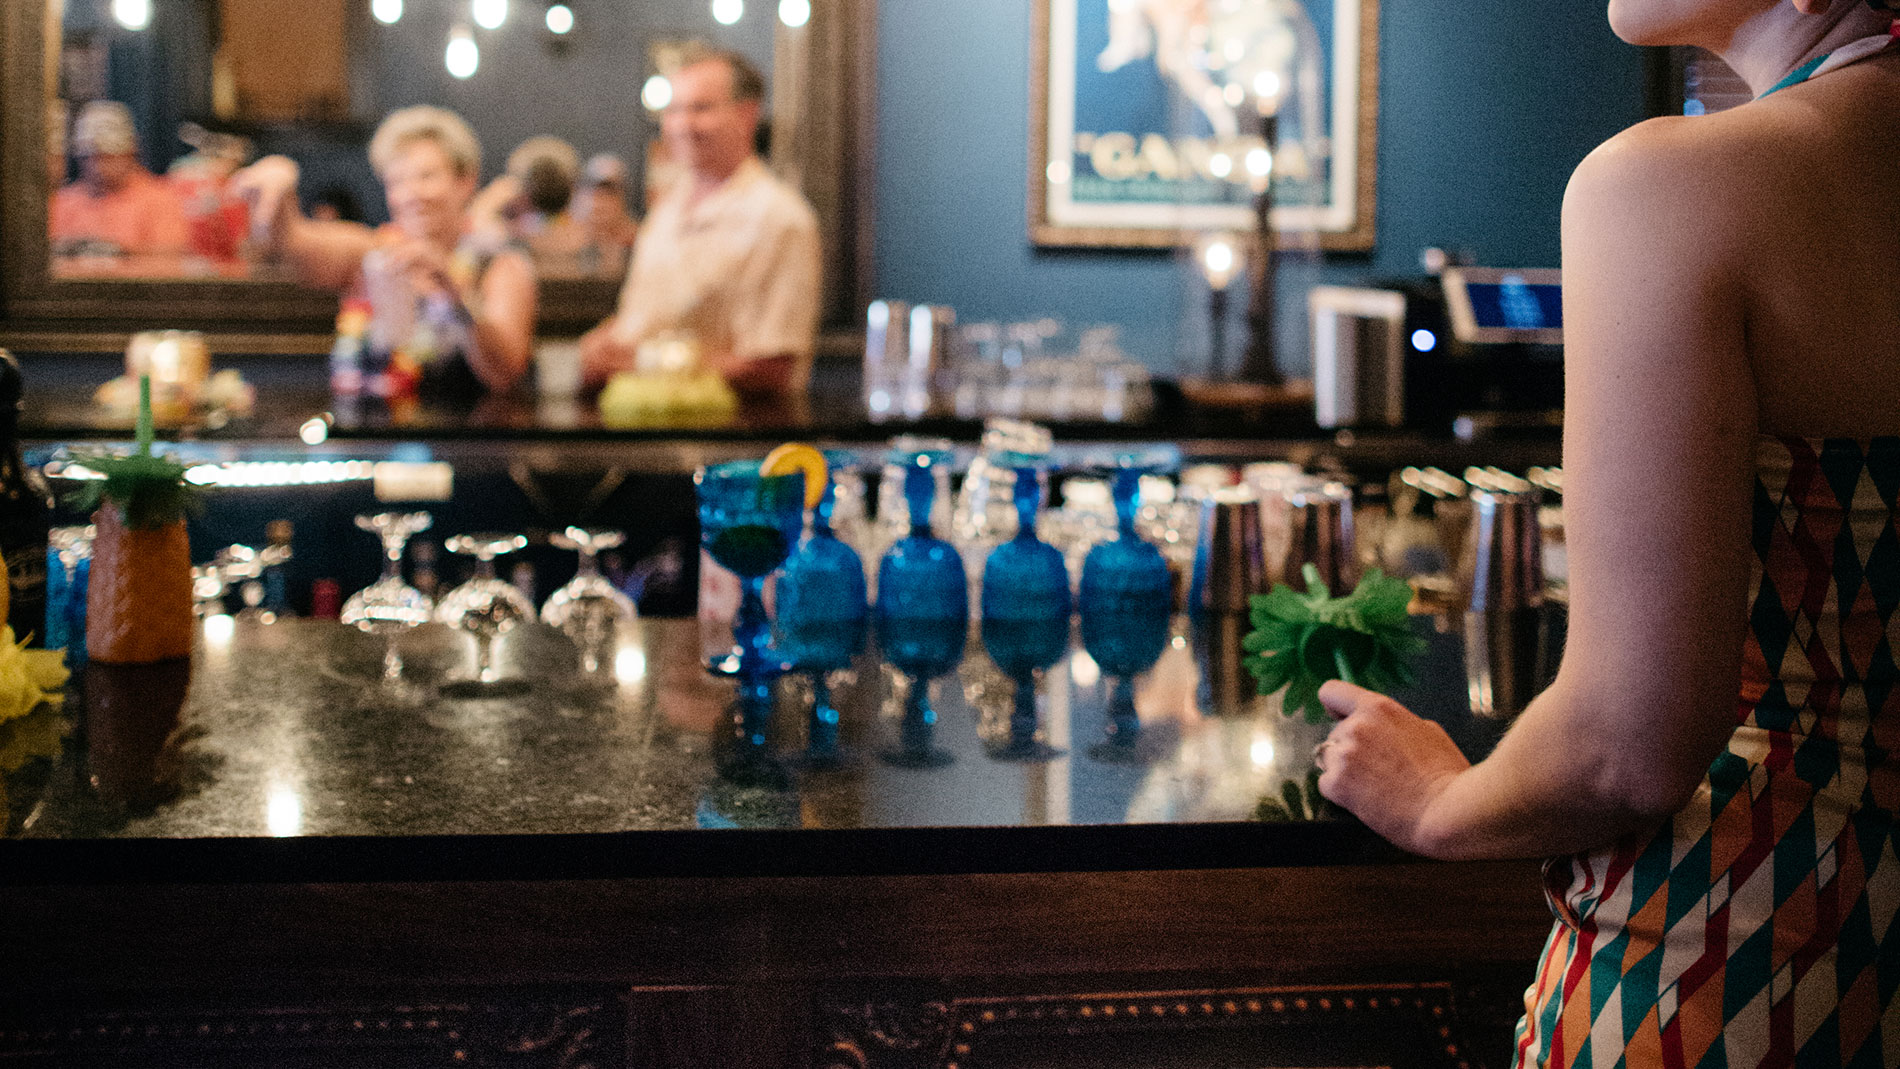 The Monocle has closed permanently in the Grove